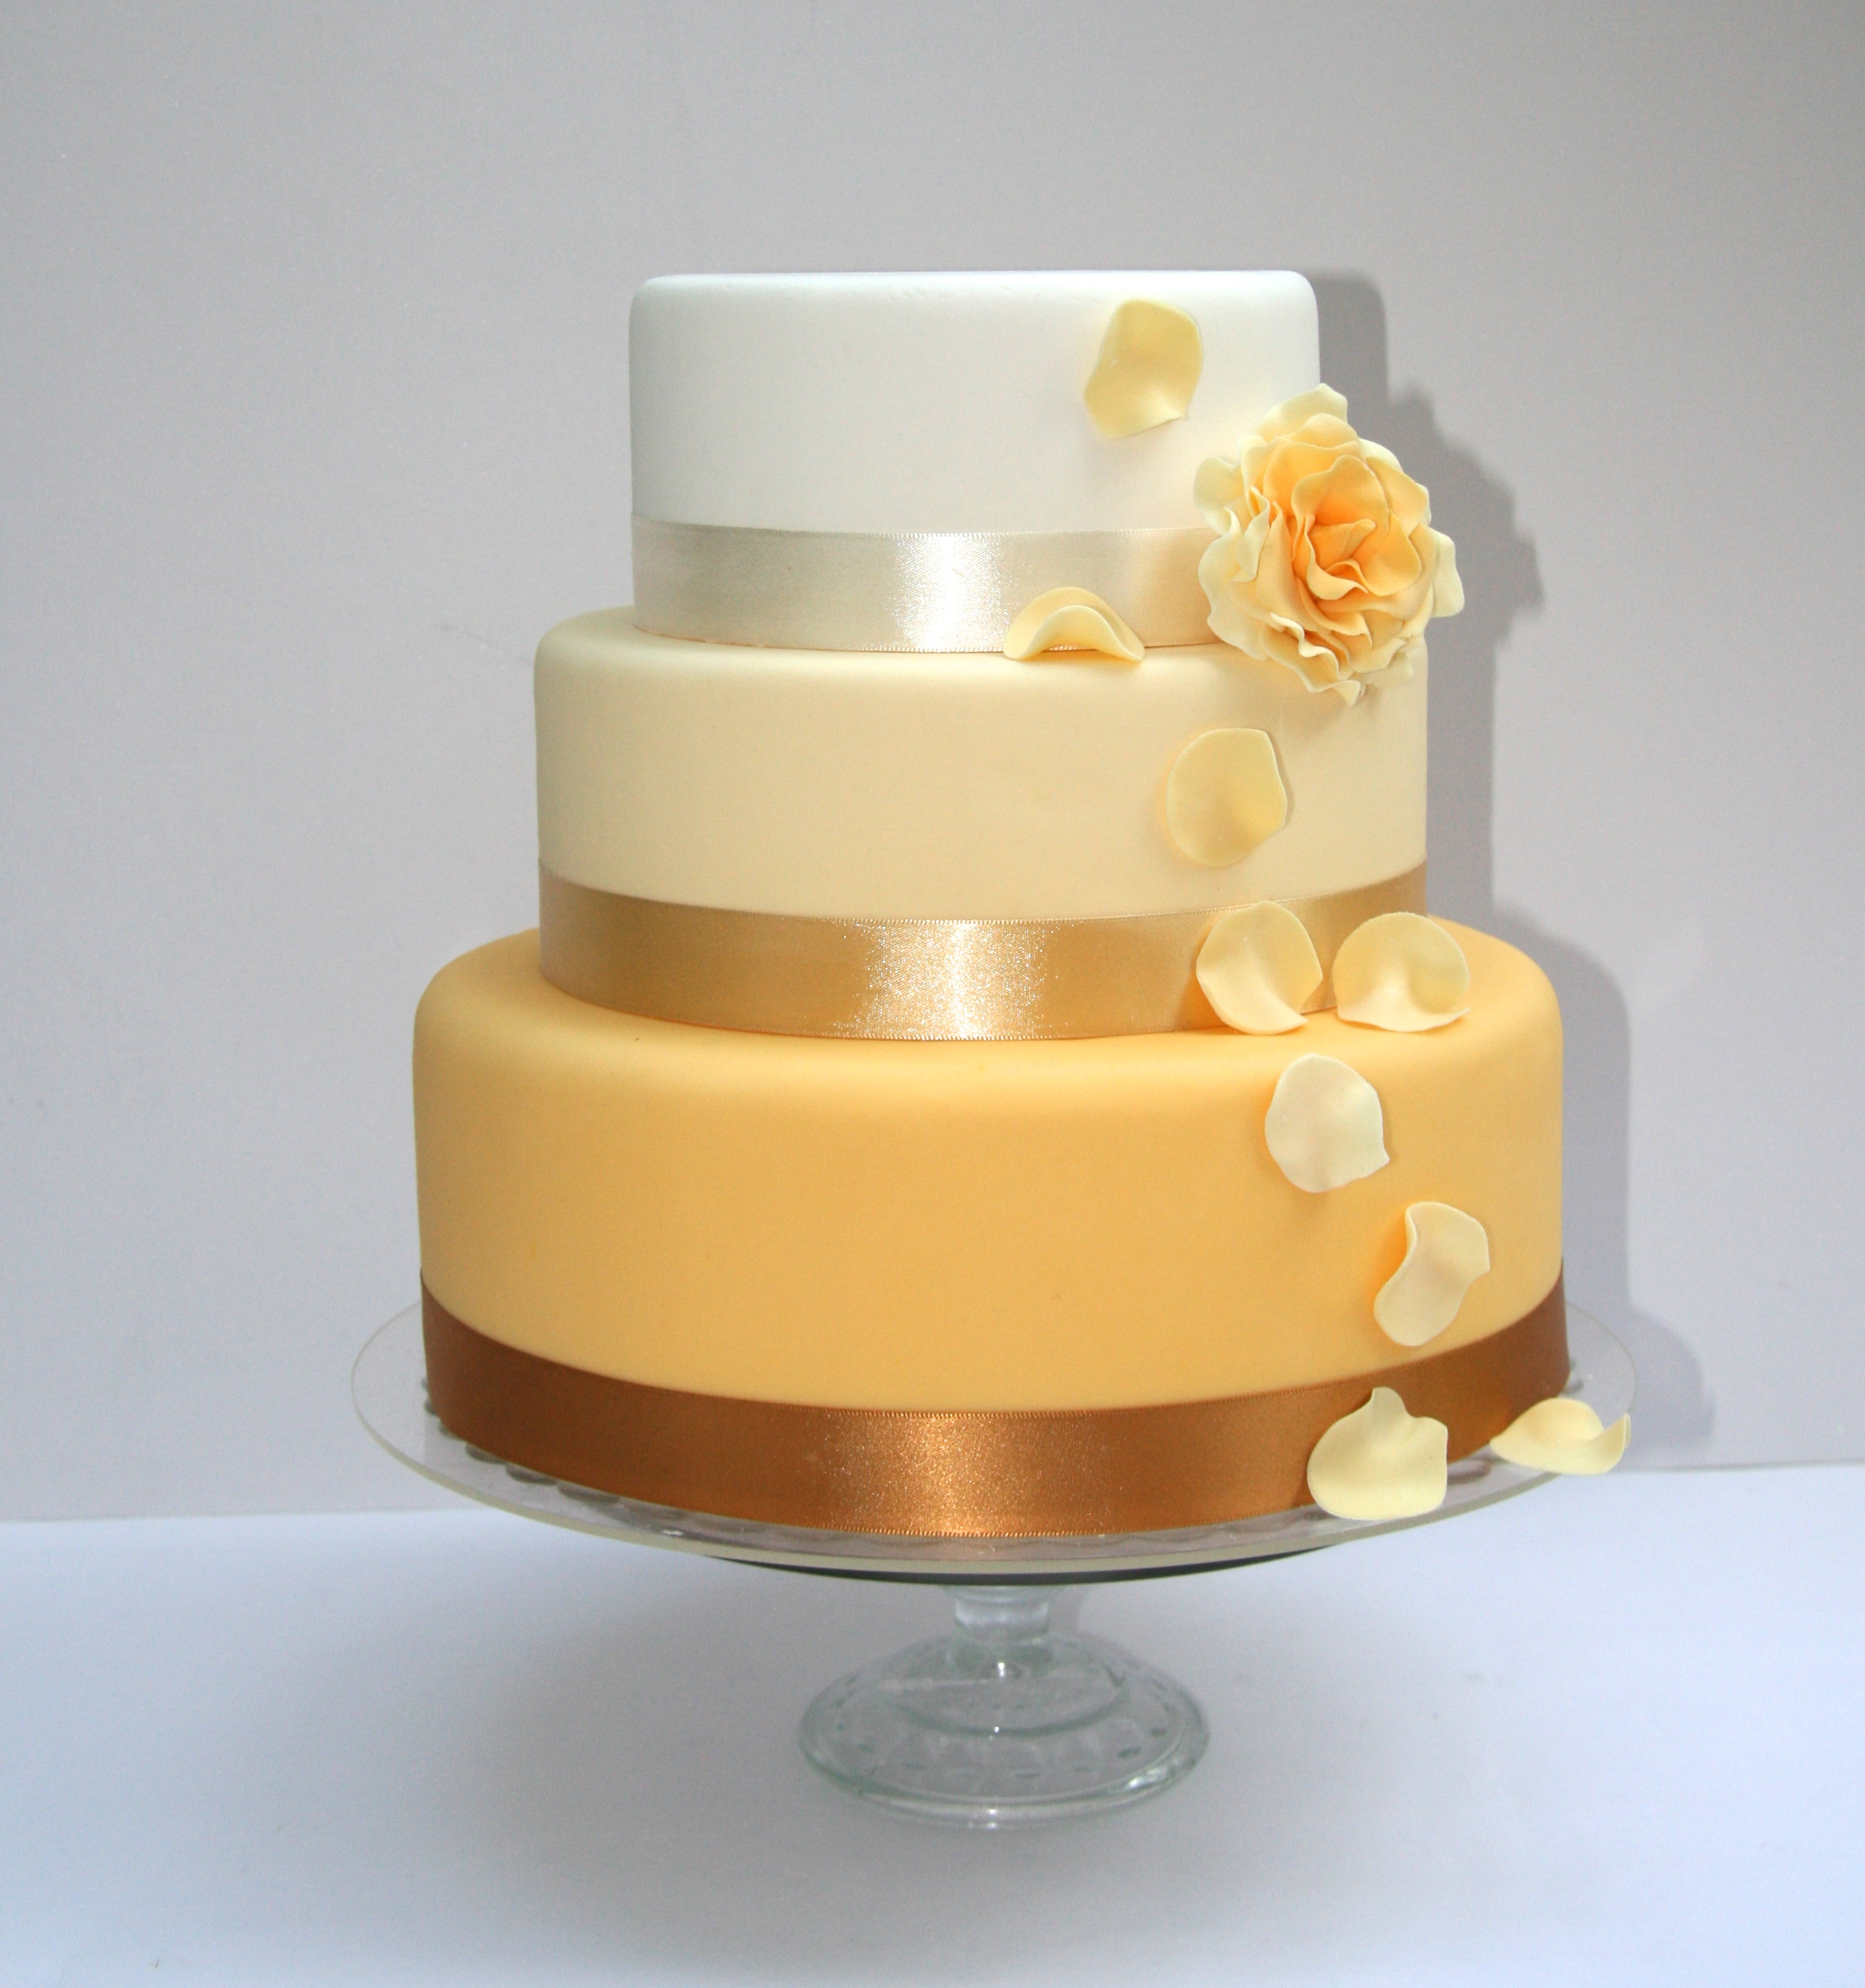 Golden Ombre Wedding Cake With Petals | Etoile Bakery